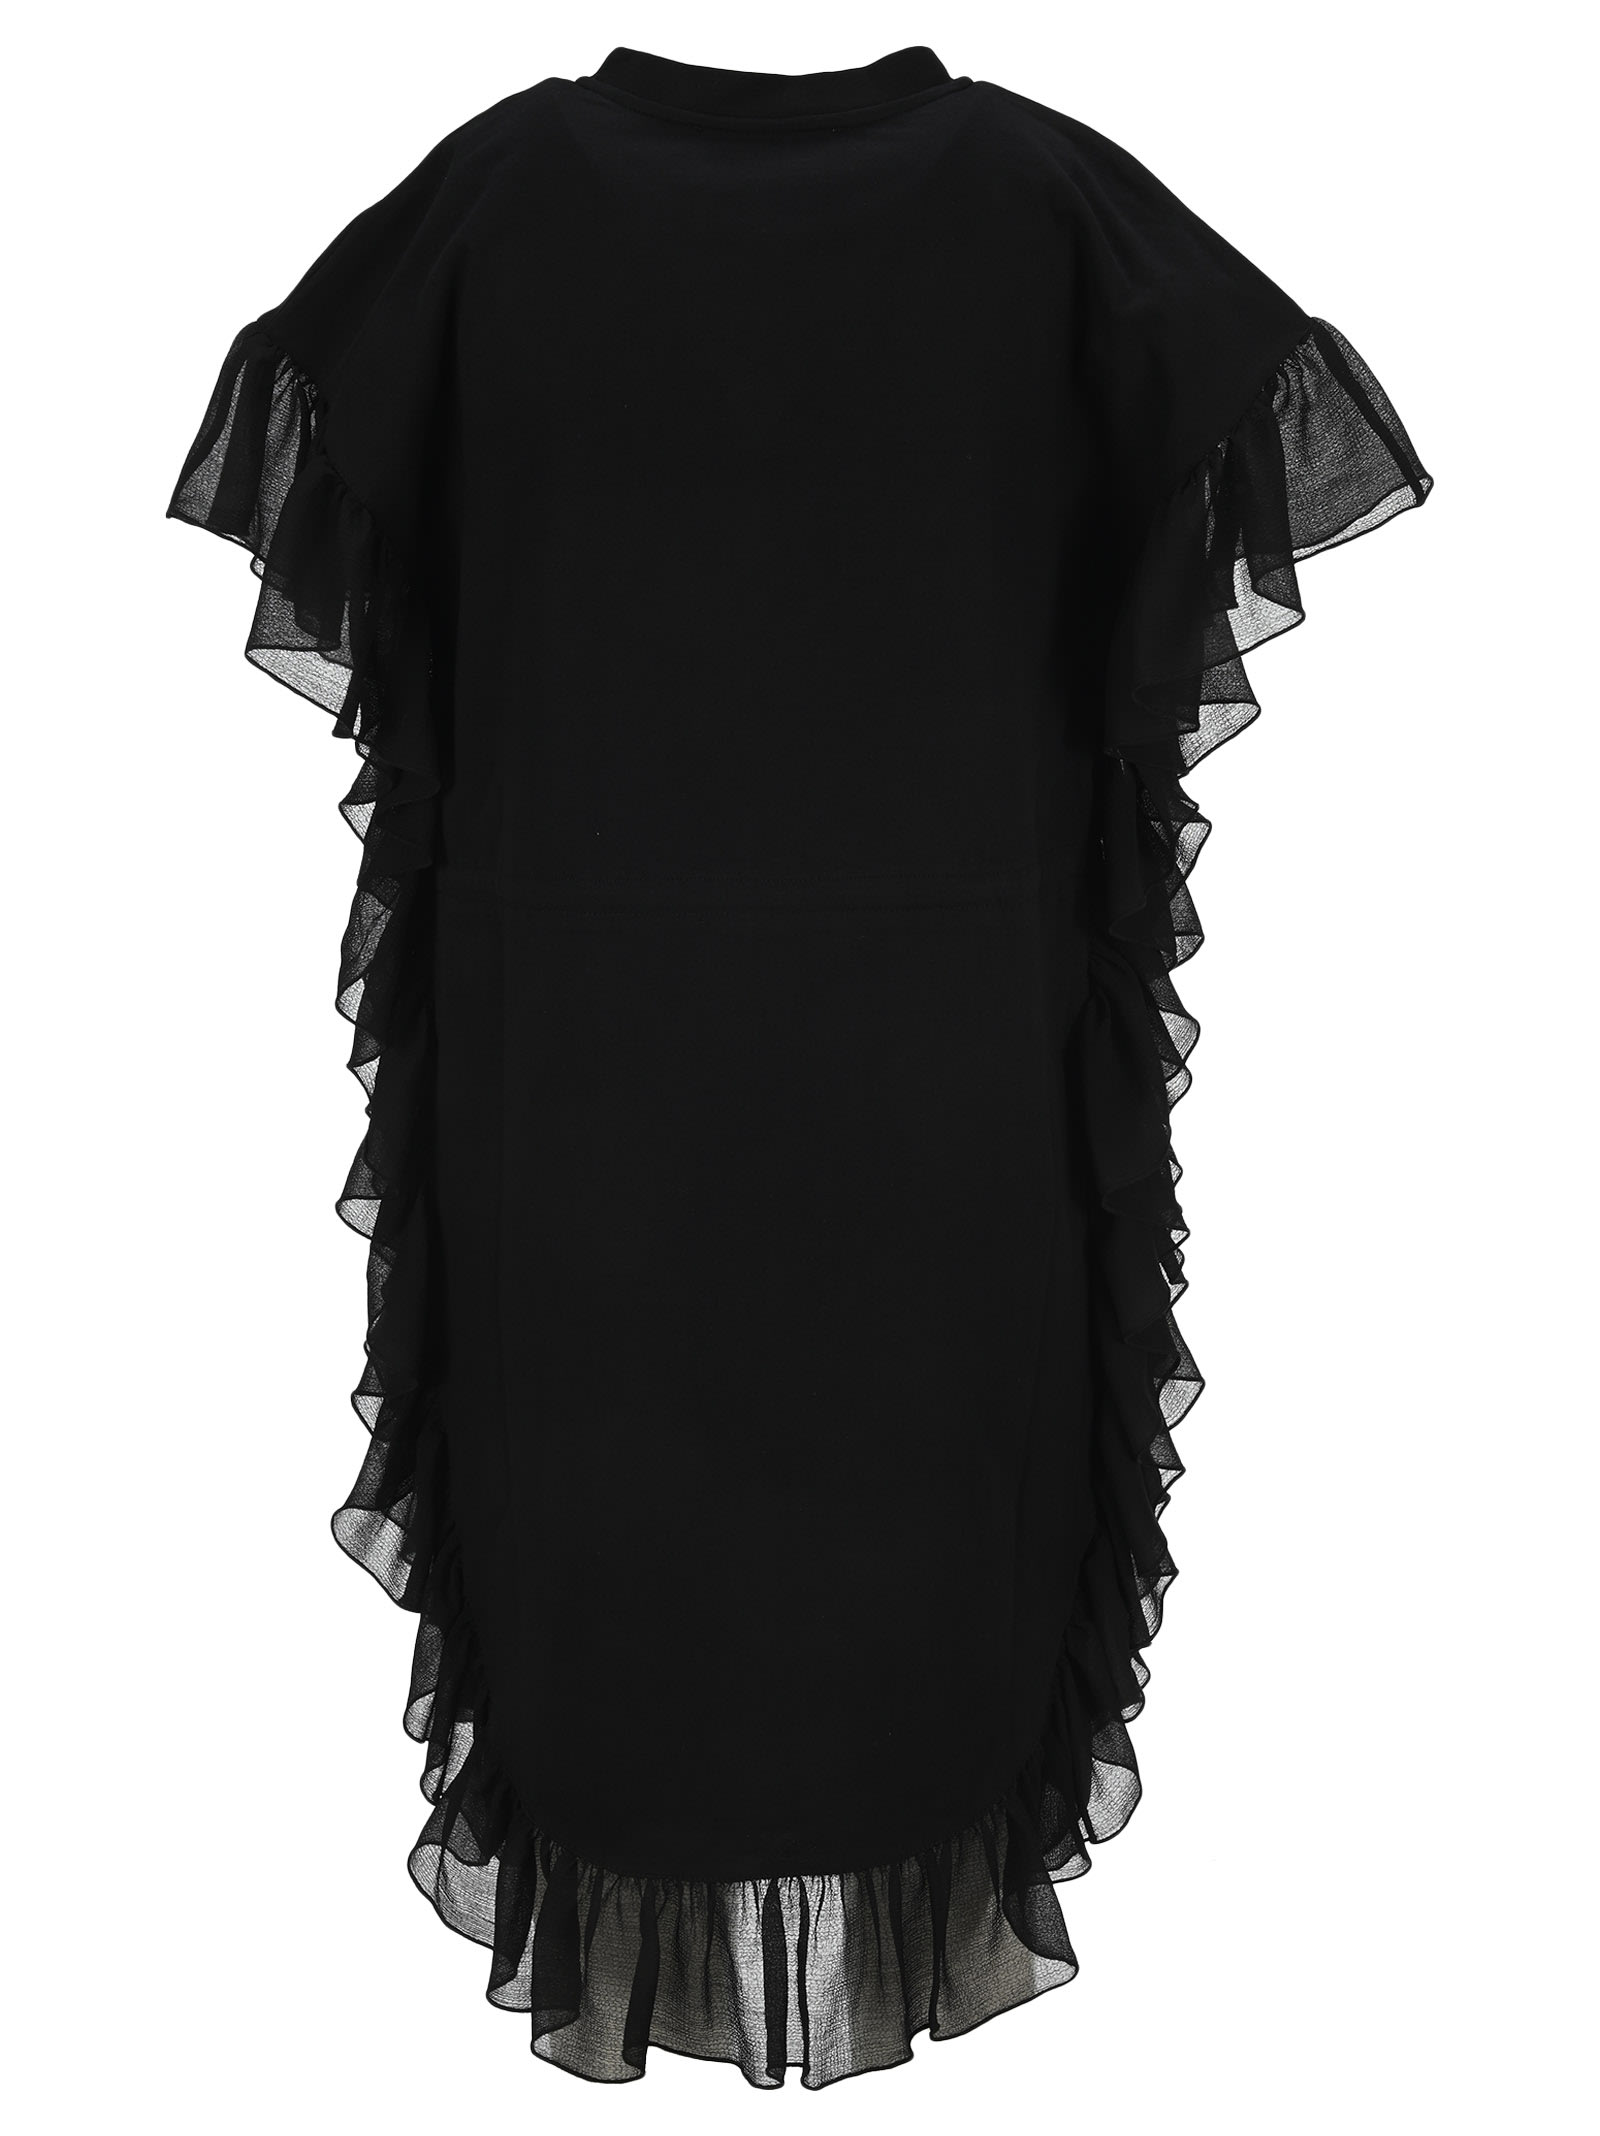 Buy See By Chloe Ruffled Drawstring-waist Dress online, shop See by Chloé with free shipping